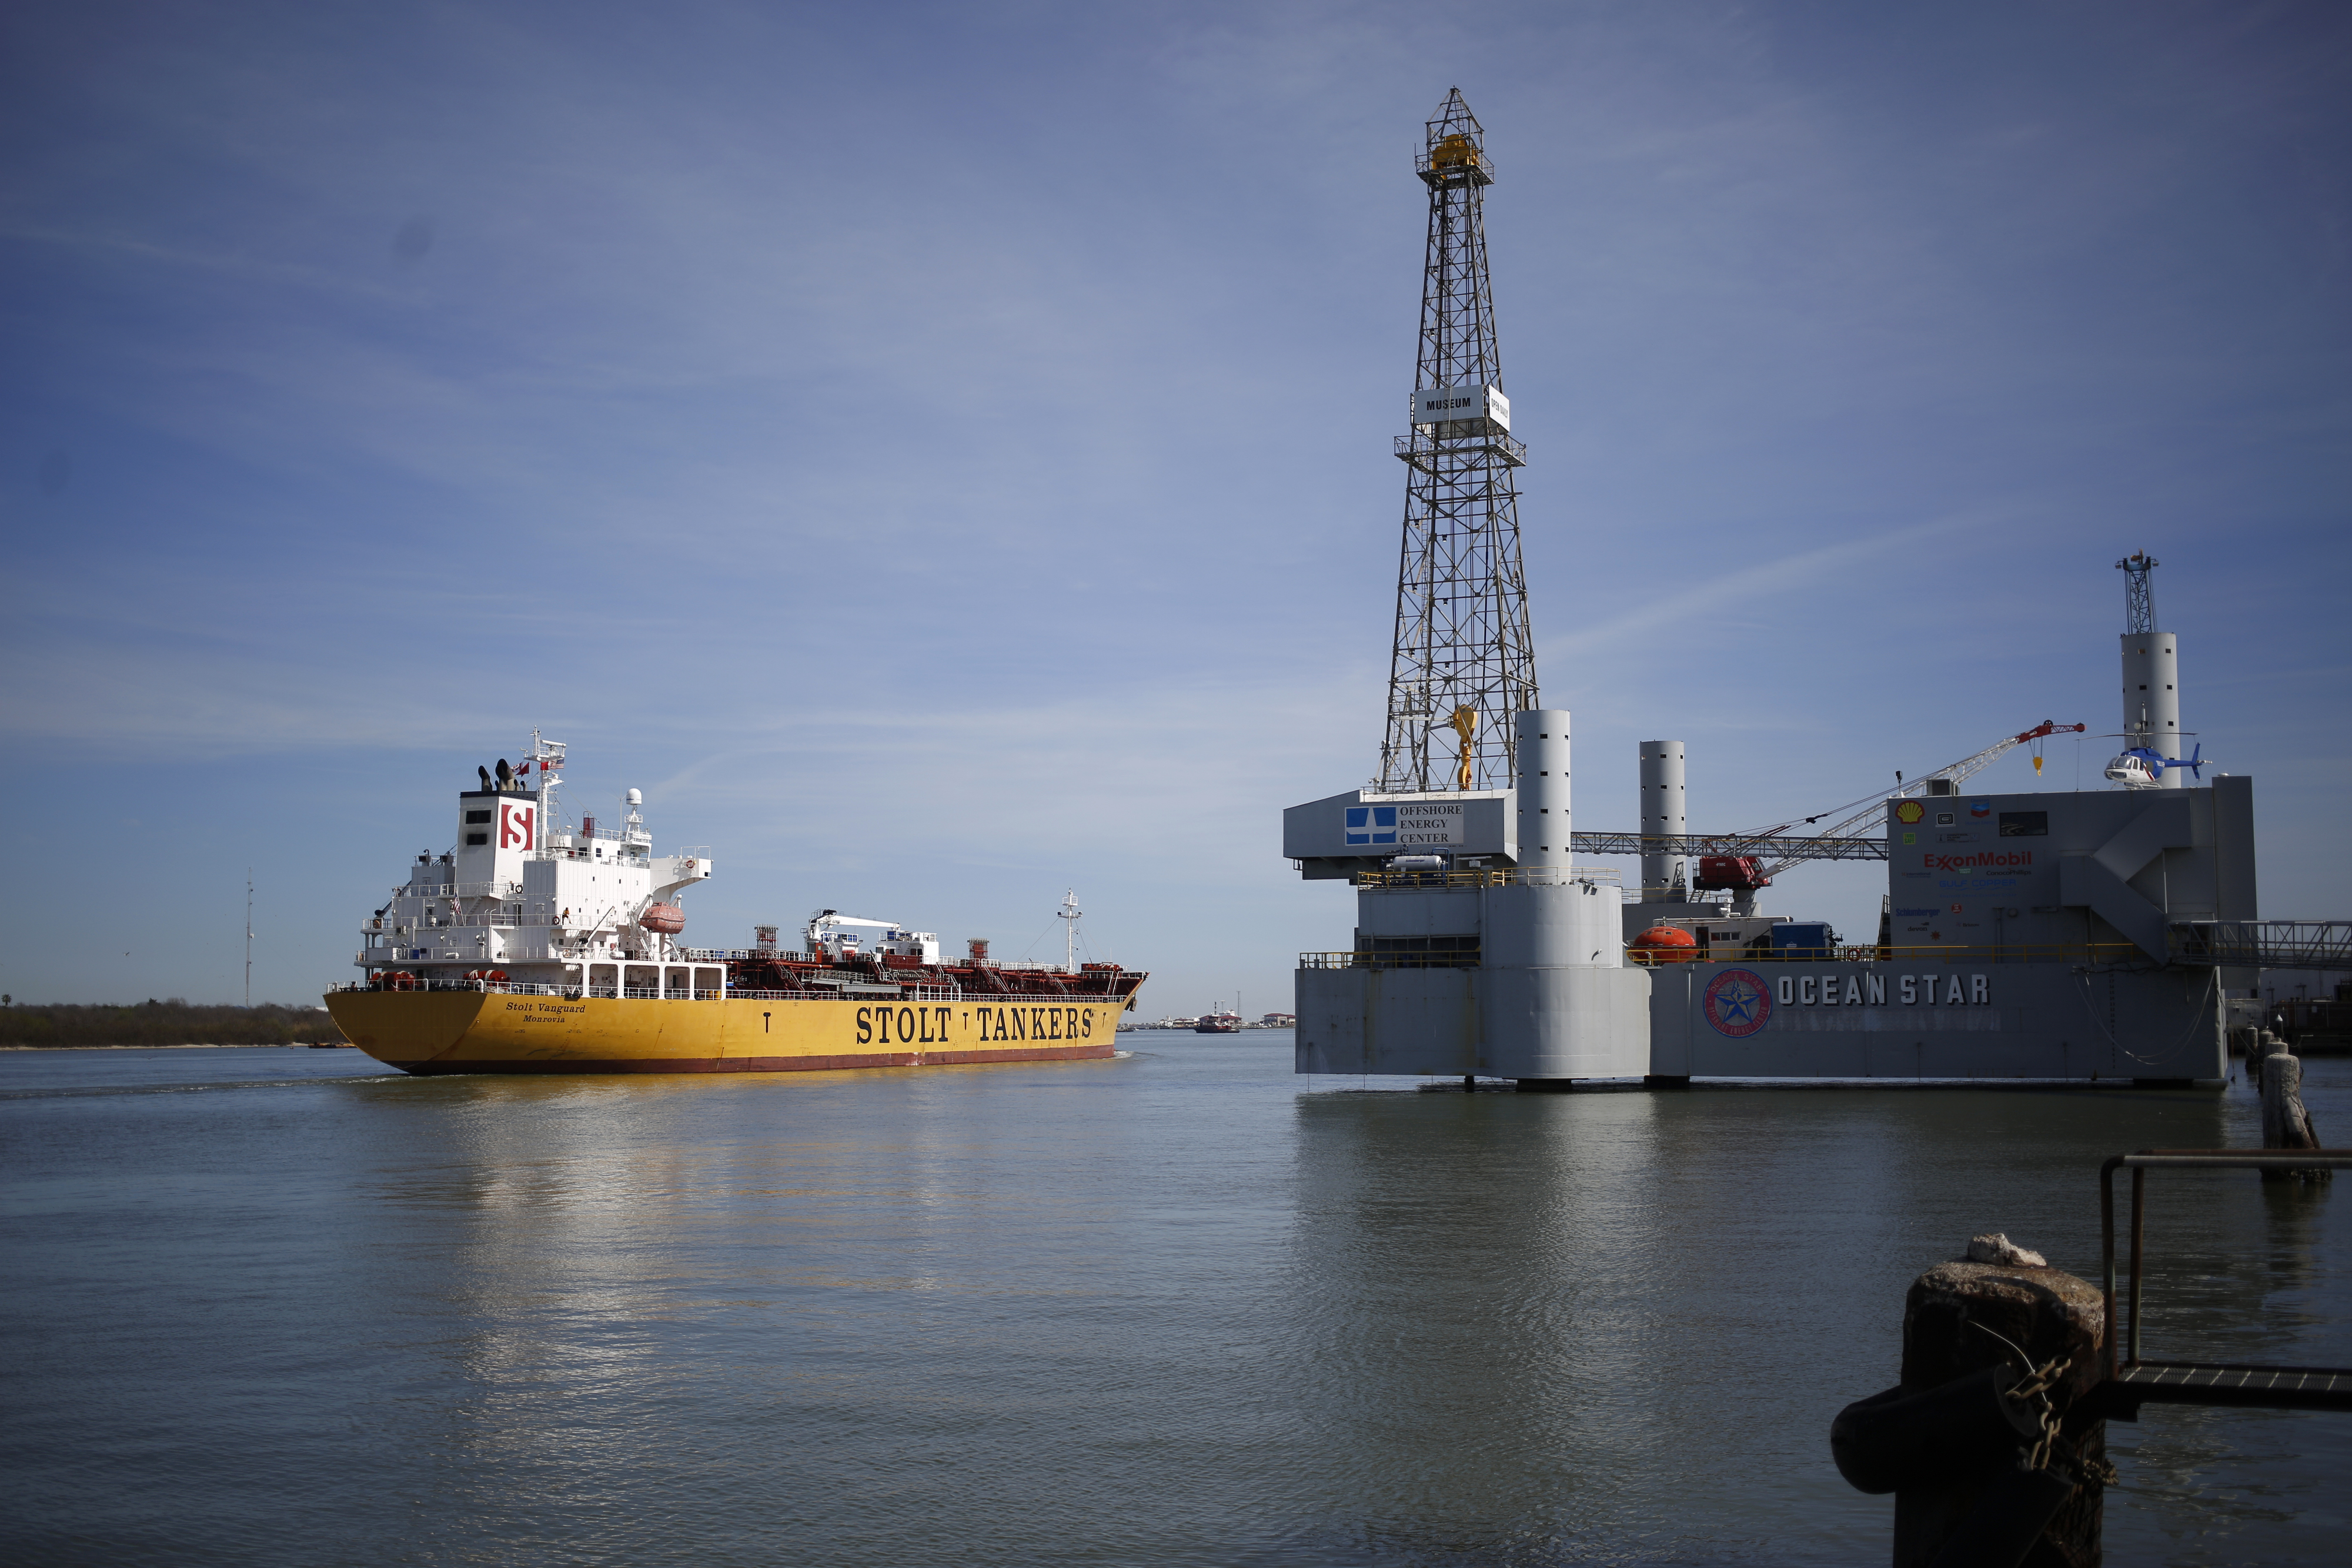 Operations At The Port Of Galveston Ahead Of Trade Balance Figures